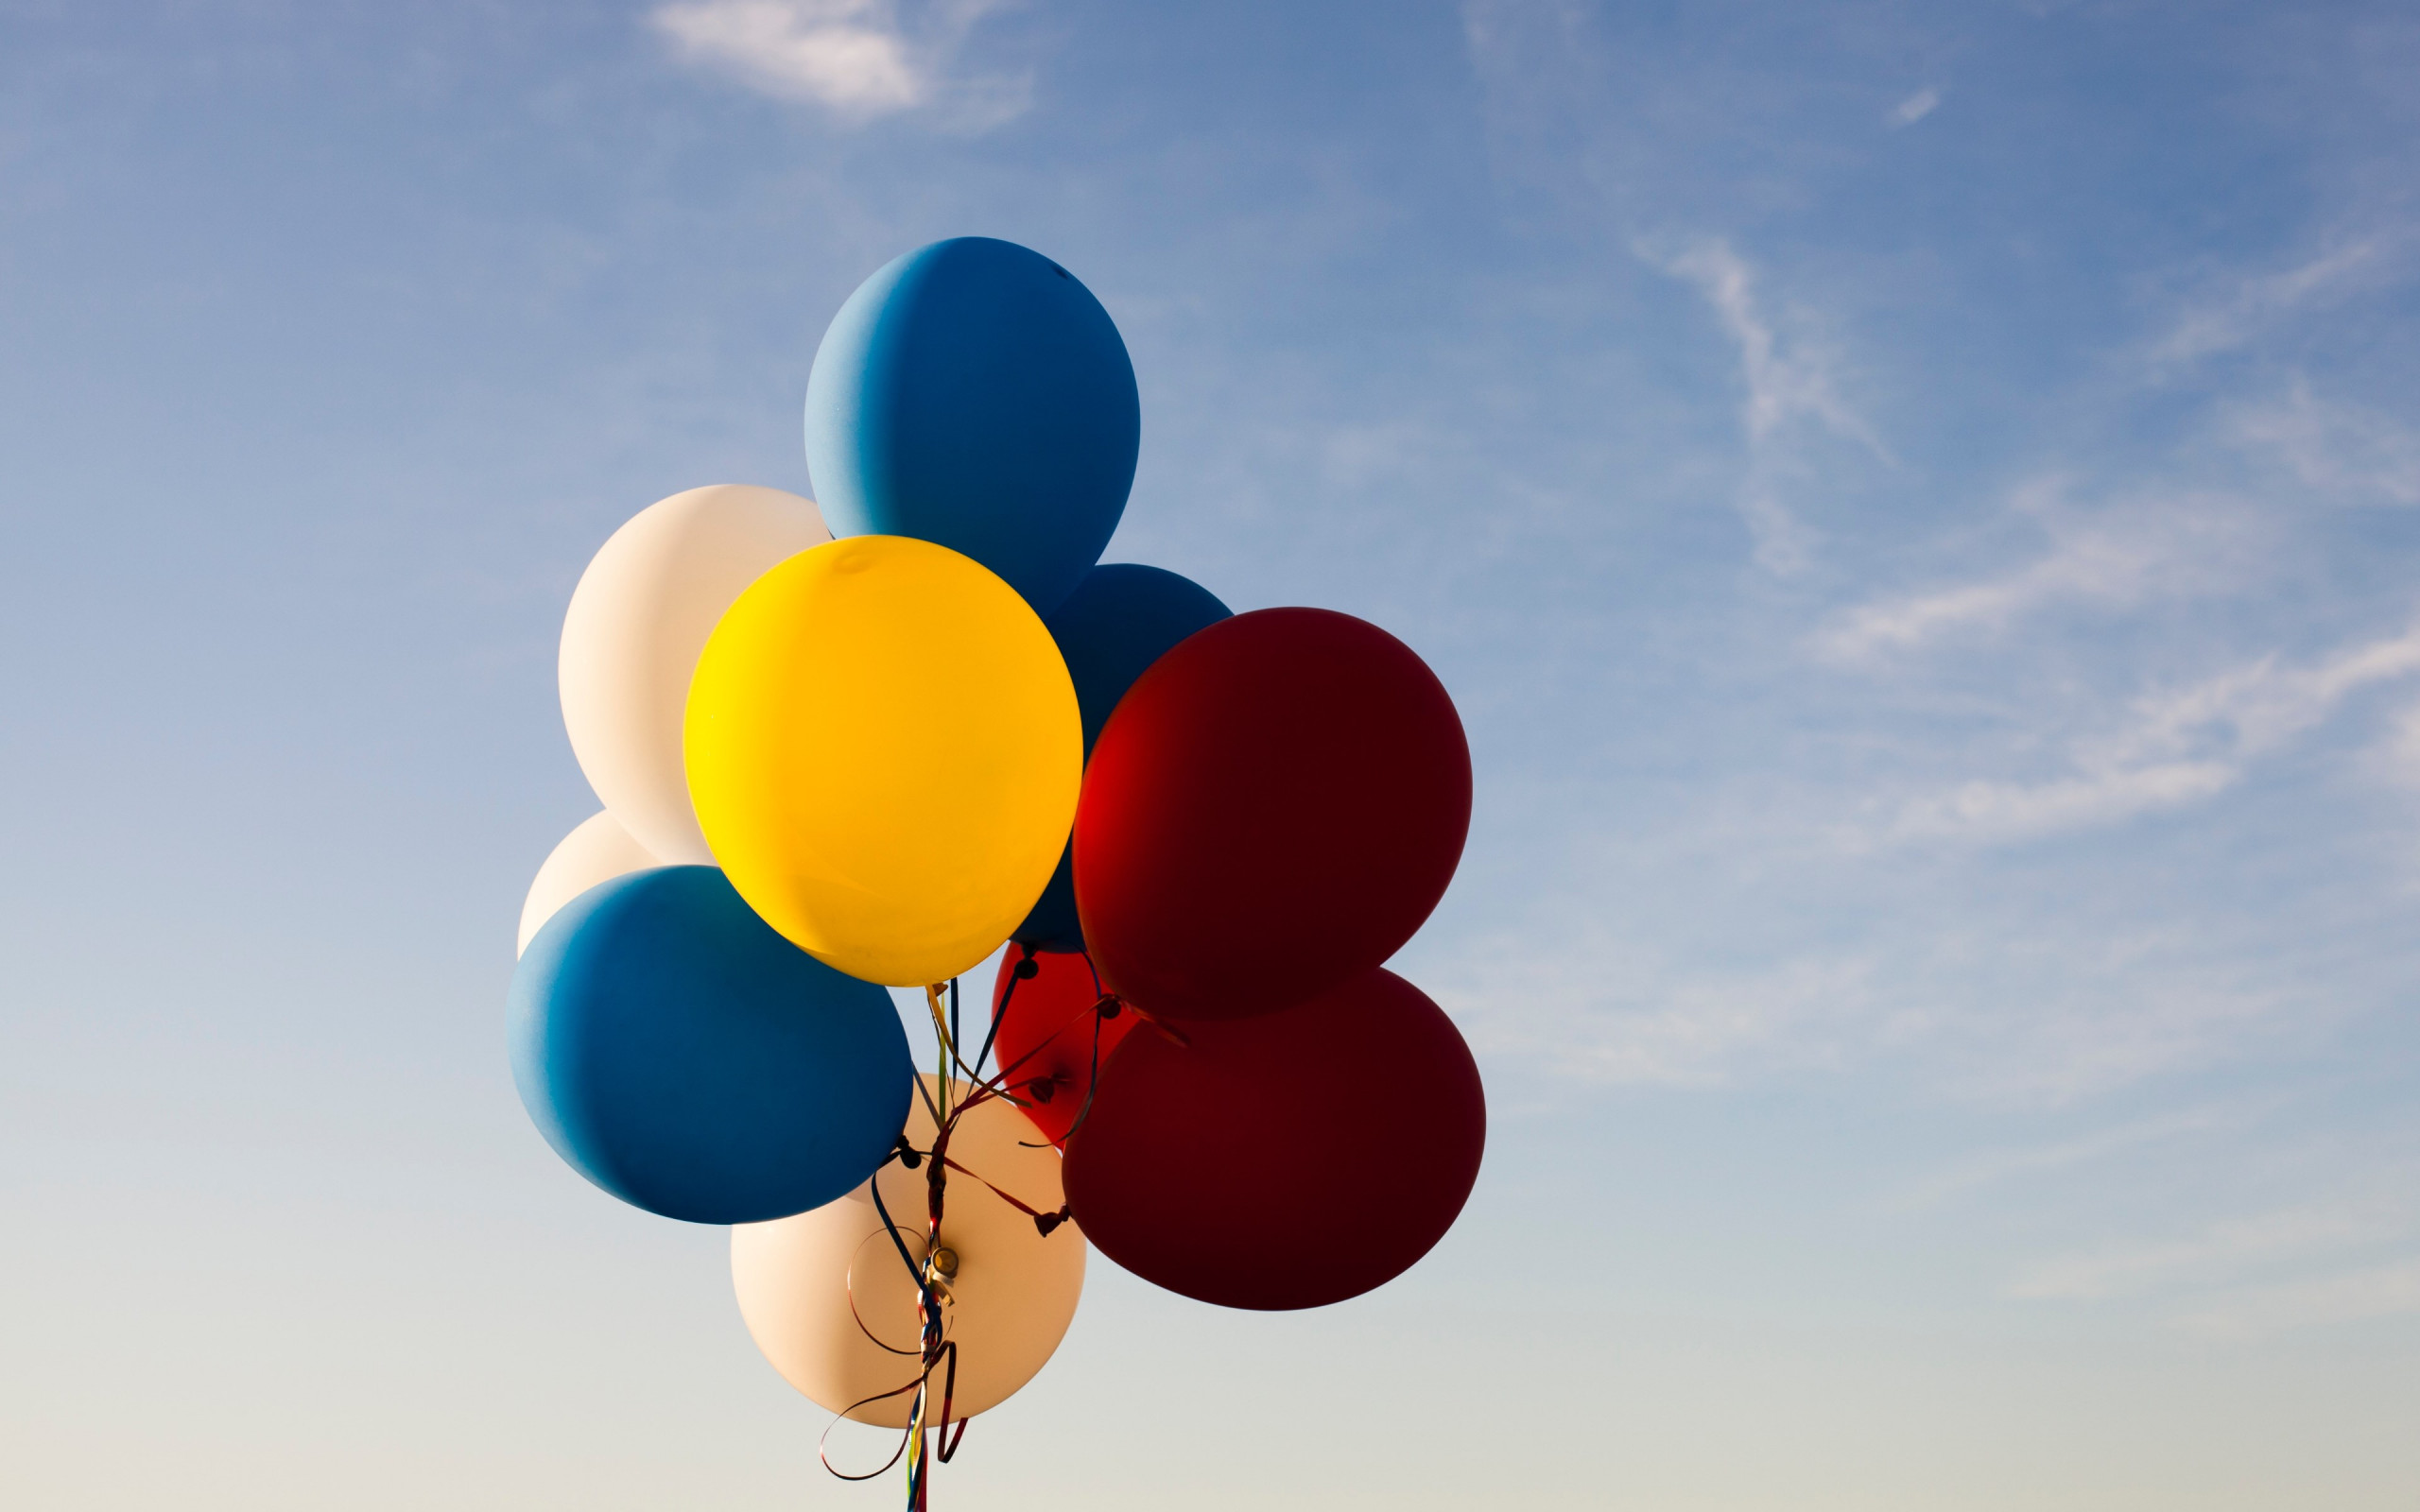 Colored balloons wallpaper 2560x1600